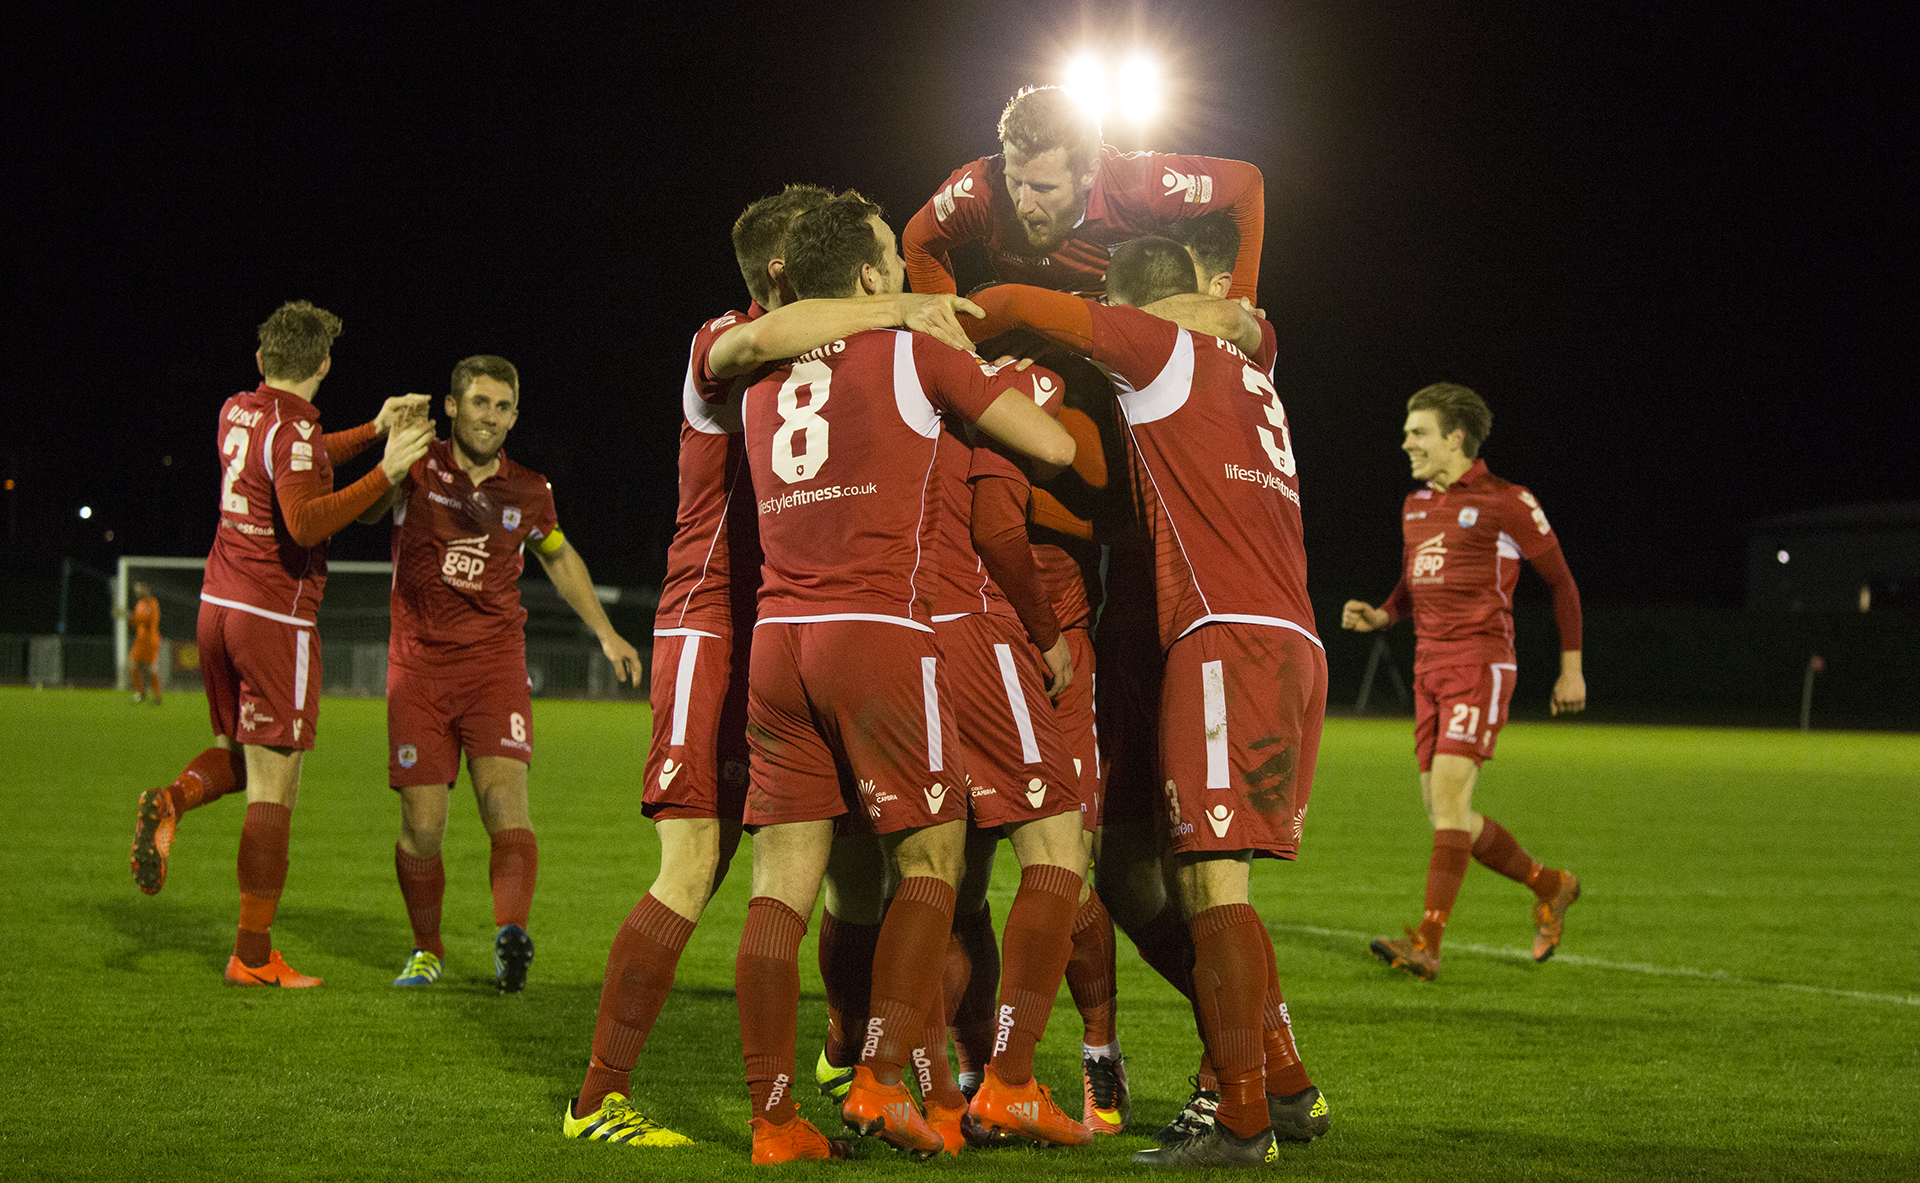 The Nomads celebrate Declan Poole's wonderstrike against TNS - © NCM Media